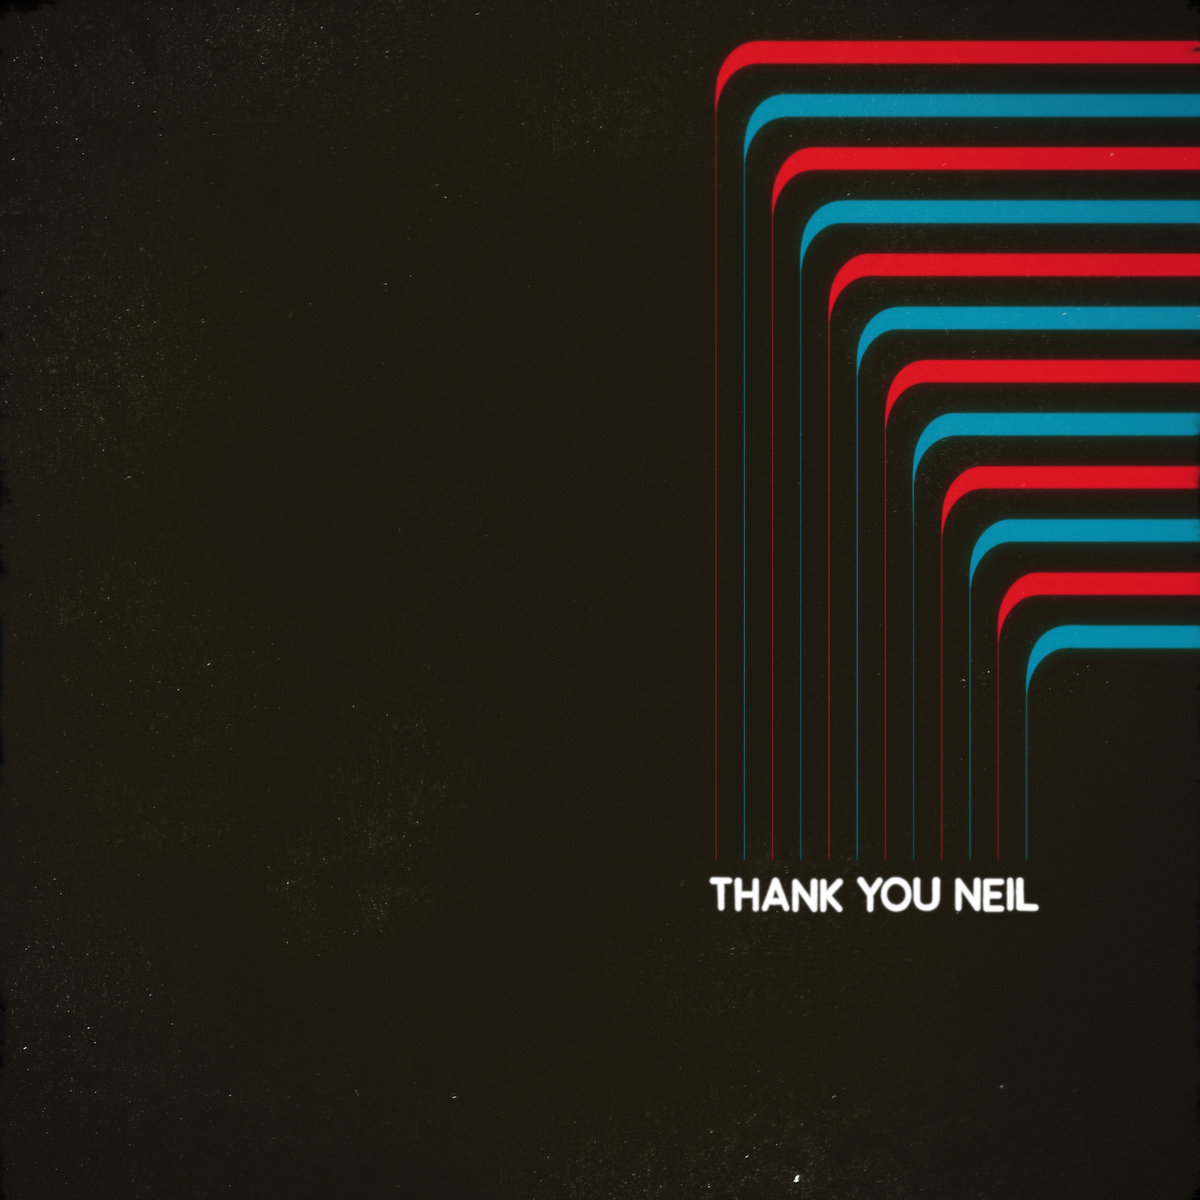 Dumbo Gets Mad - Misanthropulsar @ 'Thank You Neil' album (alternative, los angeles)